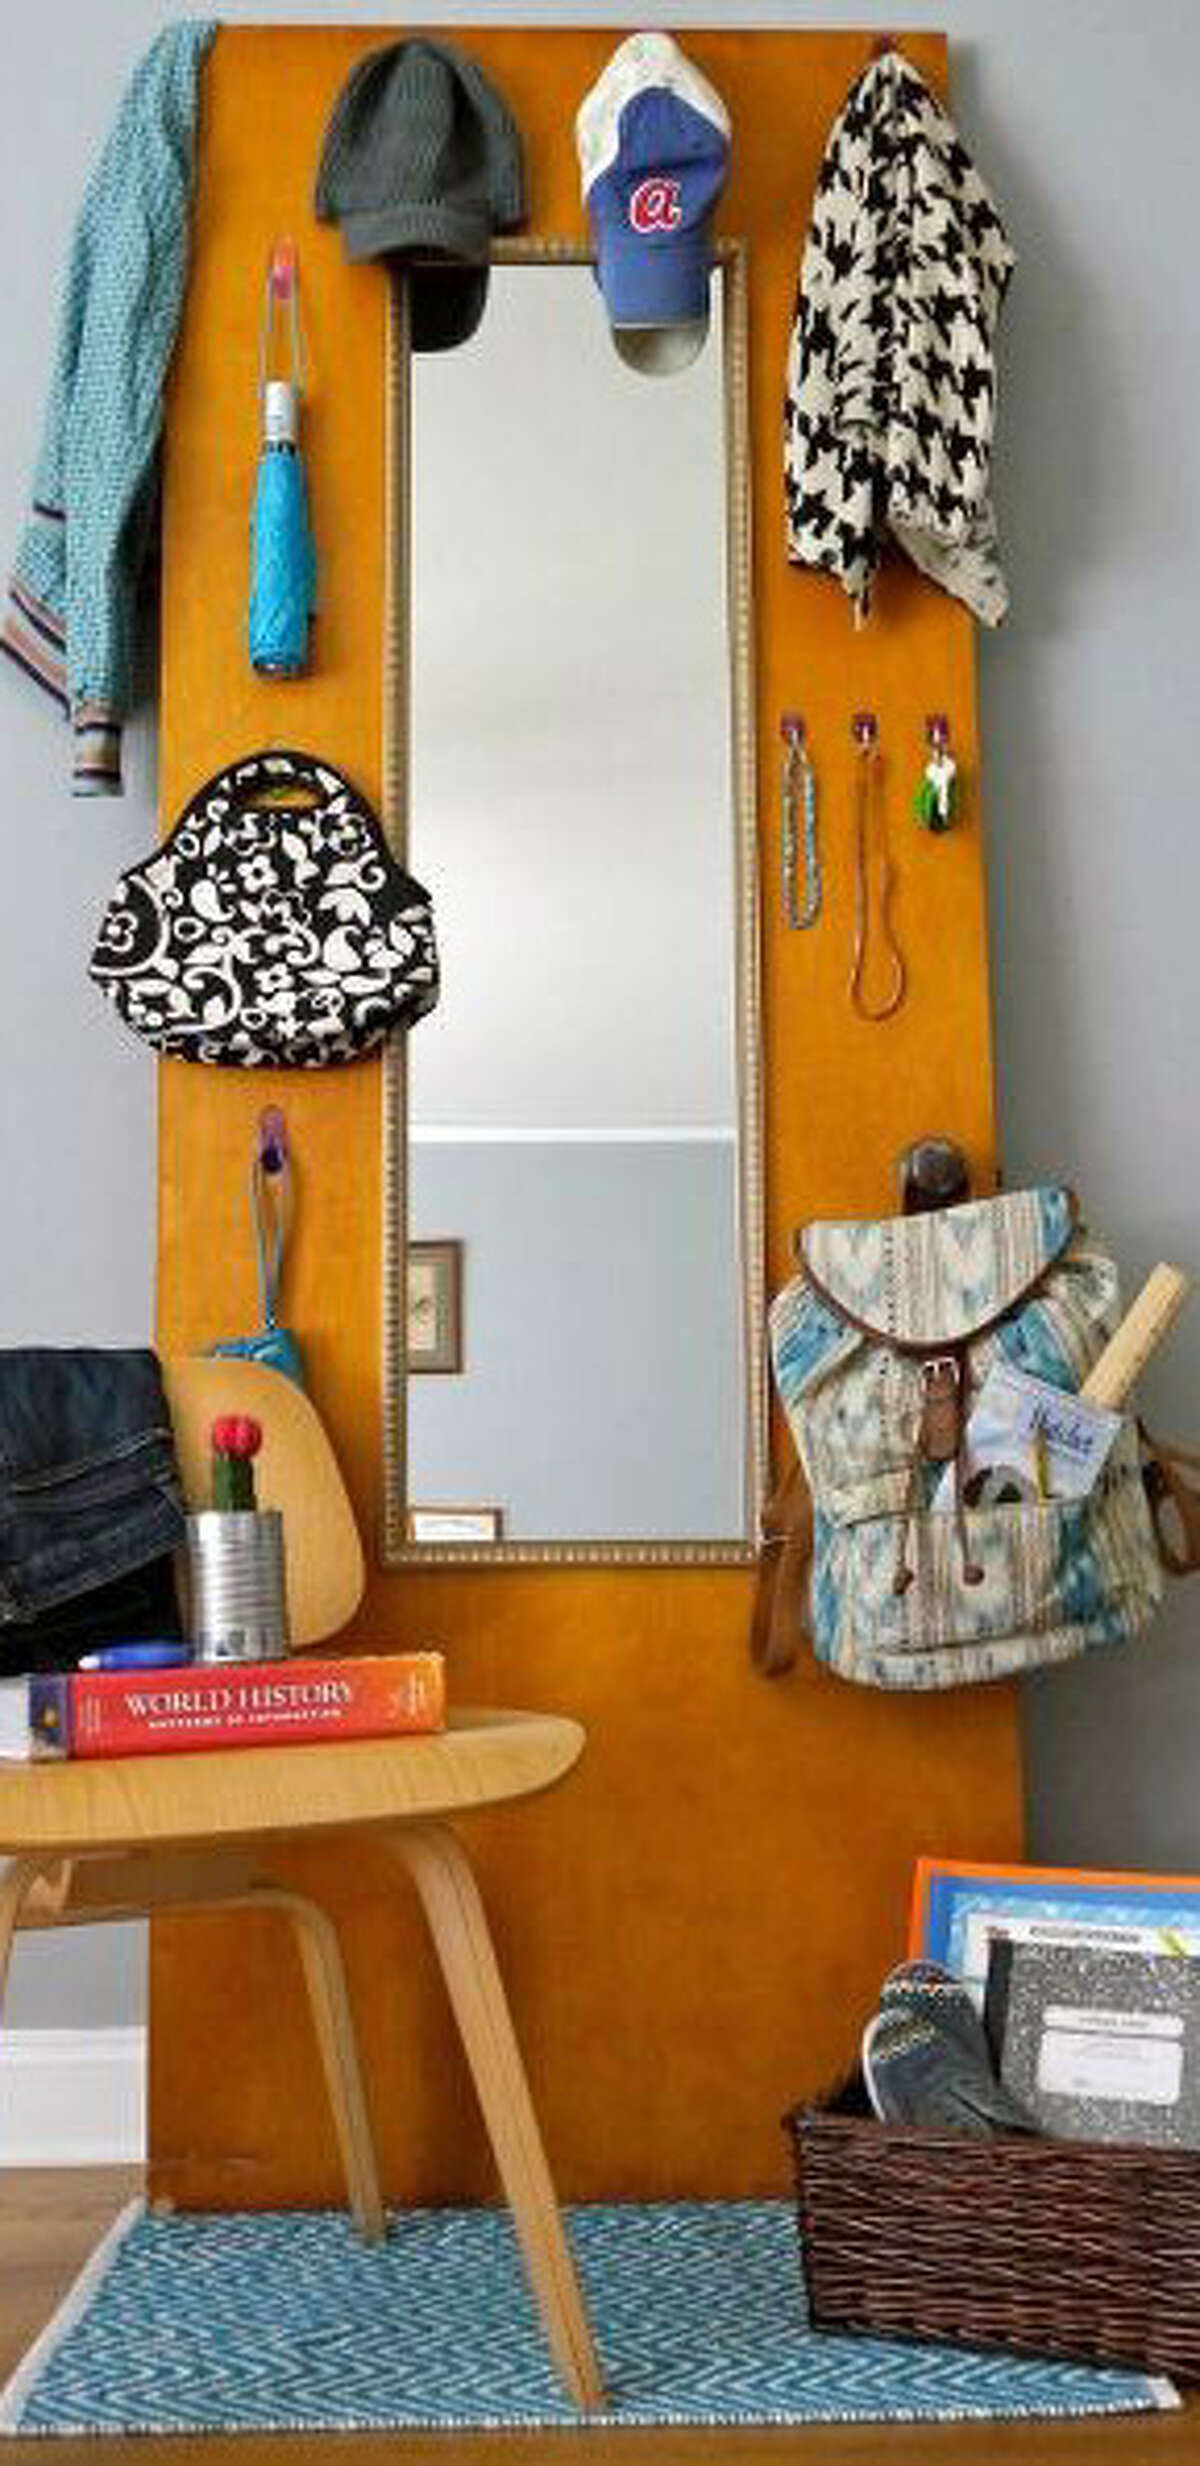 Jamie Dorobek turned a door into an organization station with a mirror and hooks. See it on Hometalk.